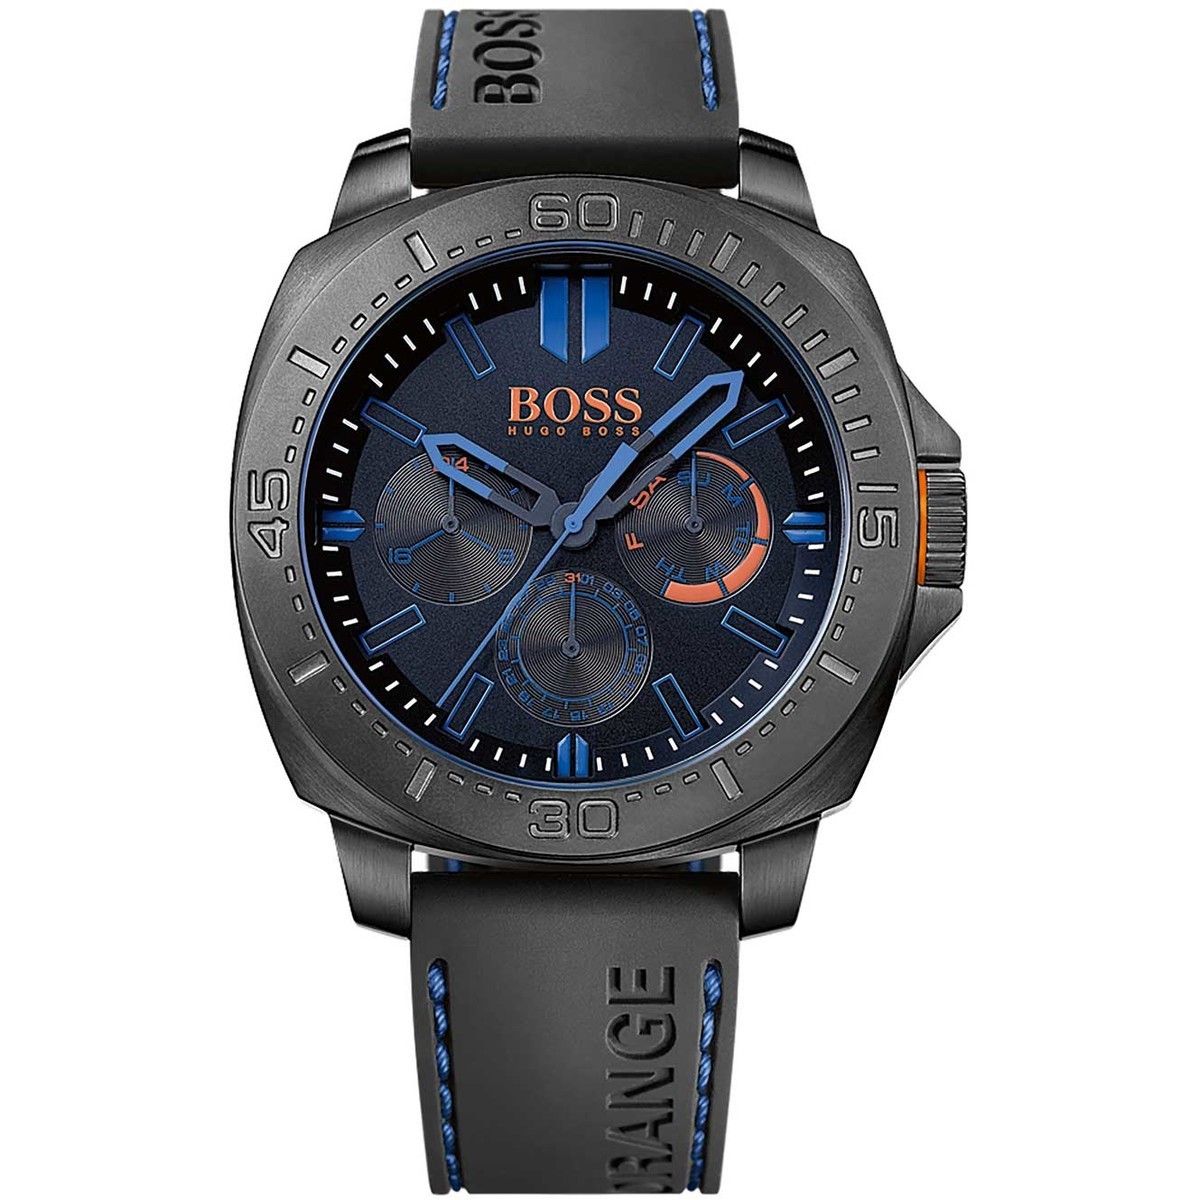 Ceas barbatesc Hugo Boss 1513242 original de mana